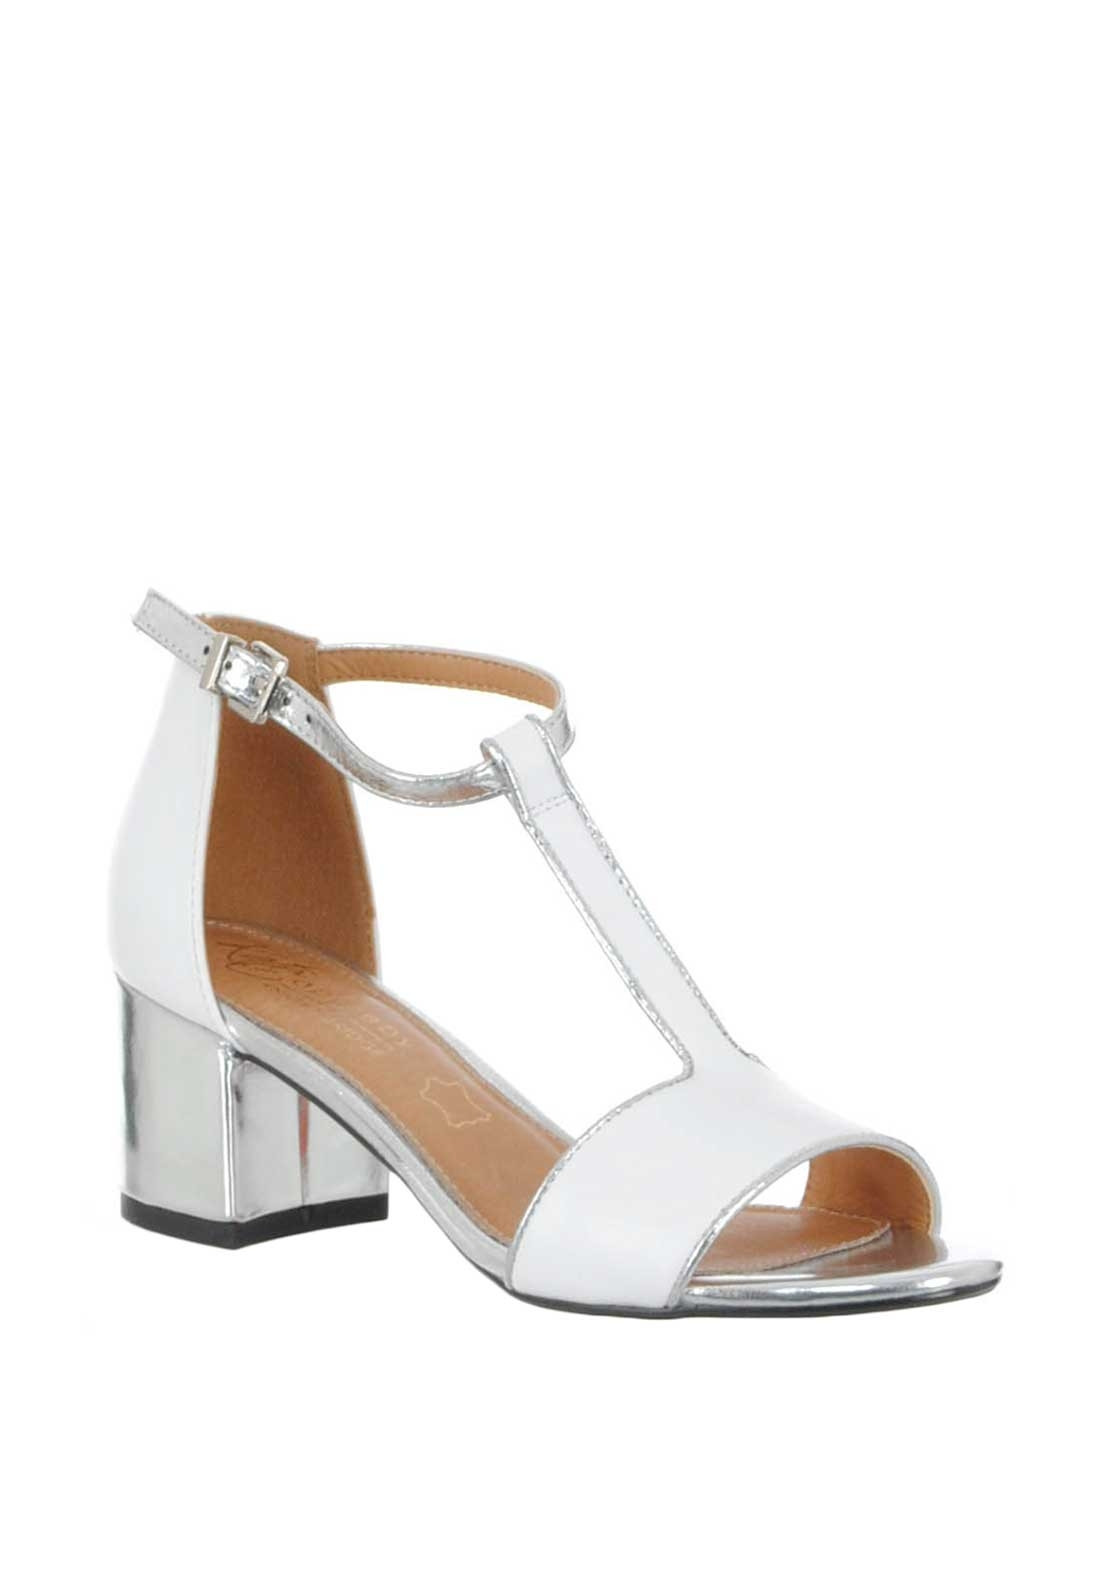 8a1343f4f11 Kate Appleby Barnet Block Heel Sandals